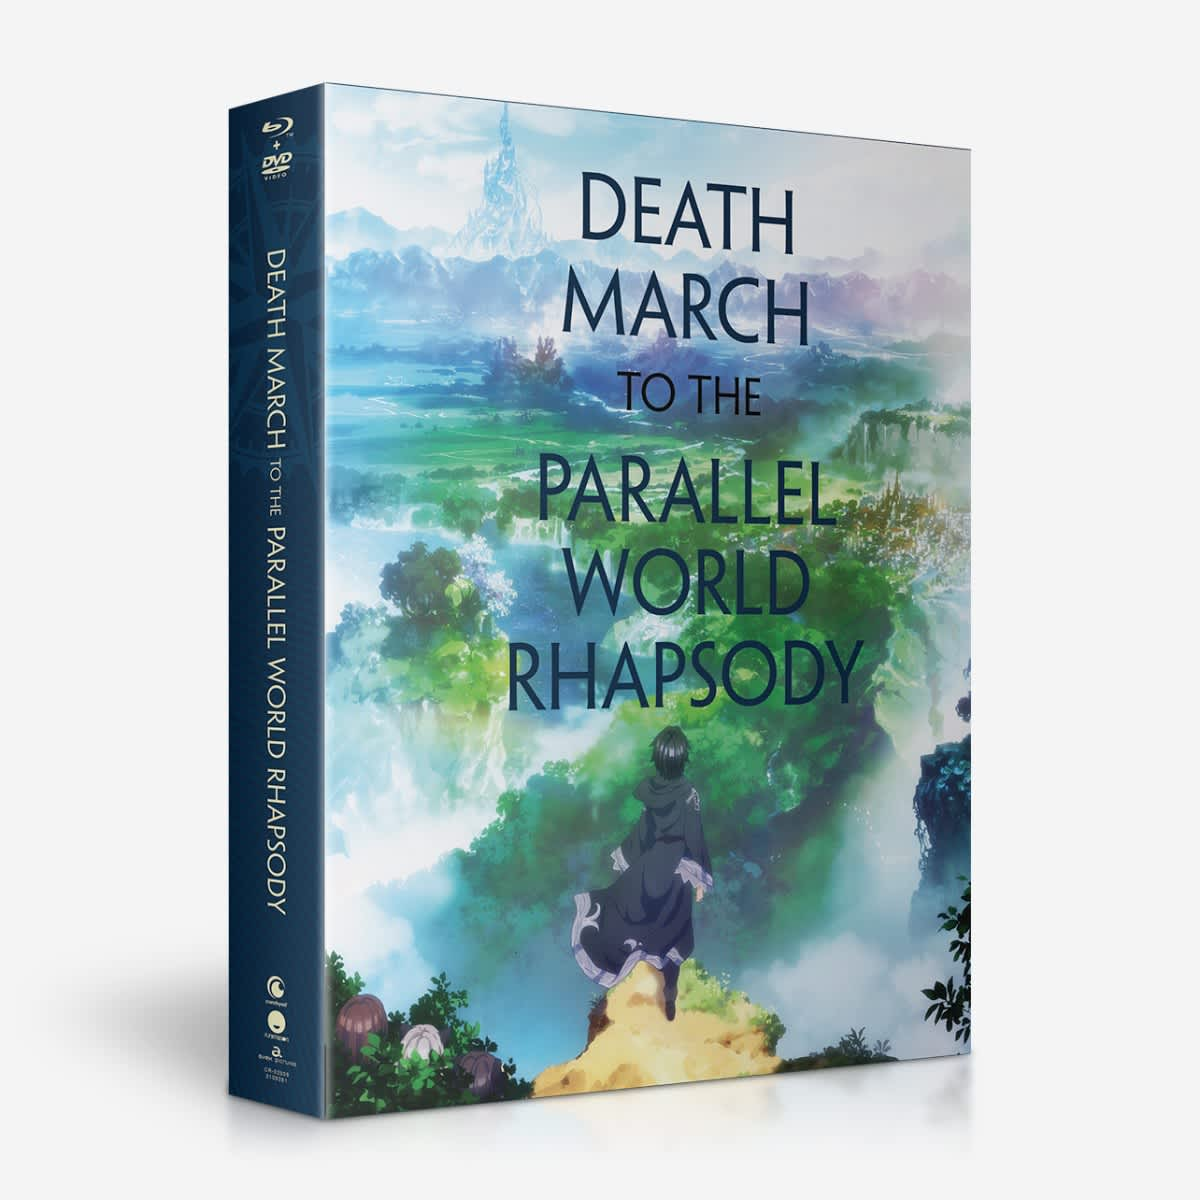 Death March to the Parallel World Rhapsody Limited Edition Blu-ray/DVD